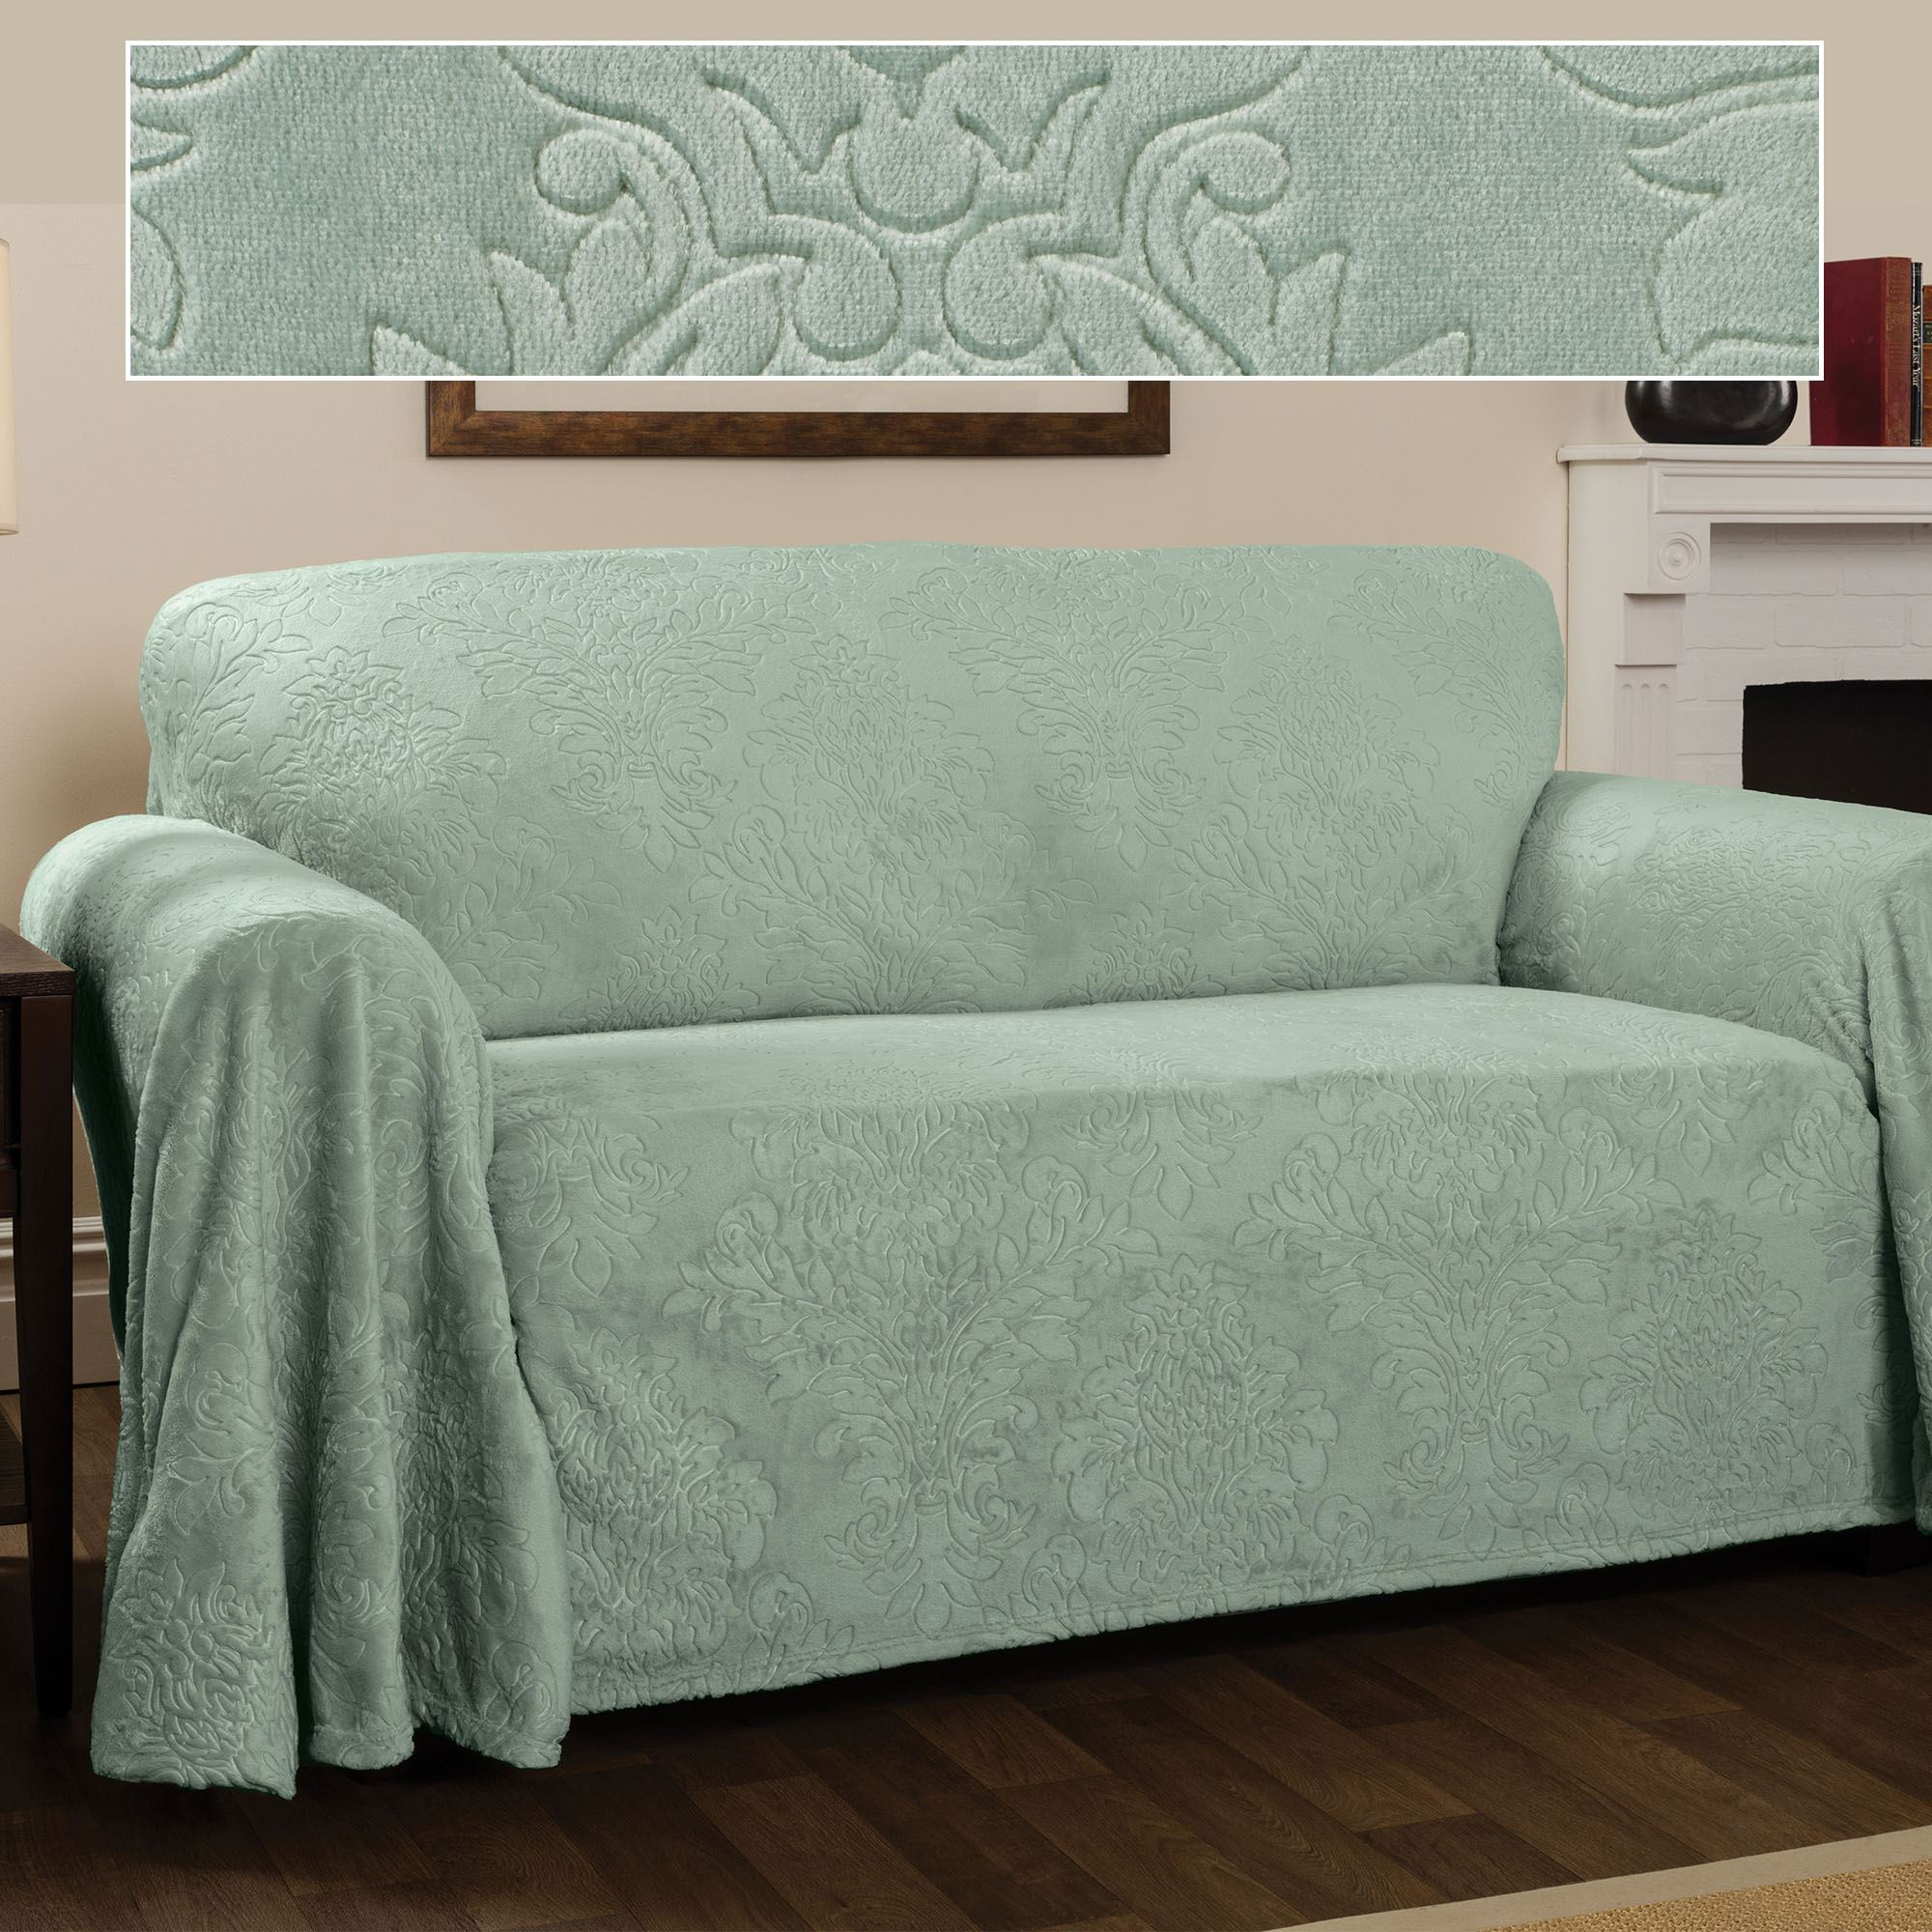 Damask Chair Elegant Damask Celadon Drapable Furniture Covers